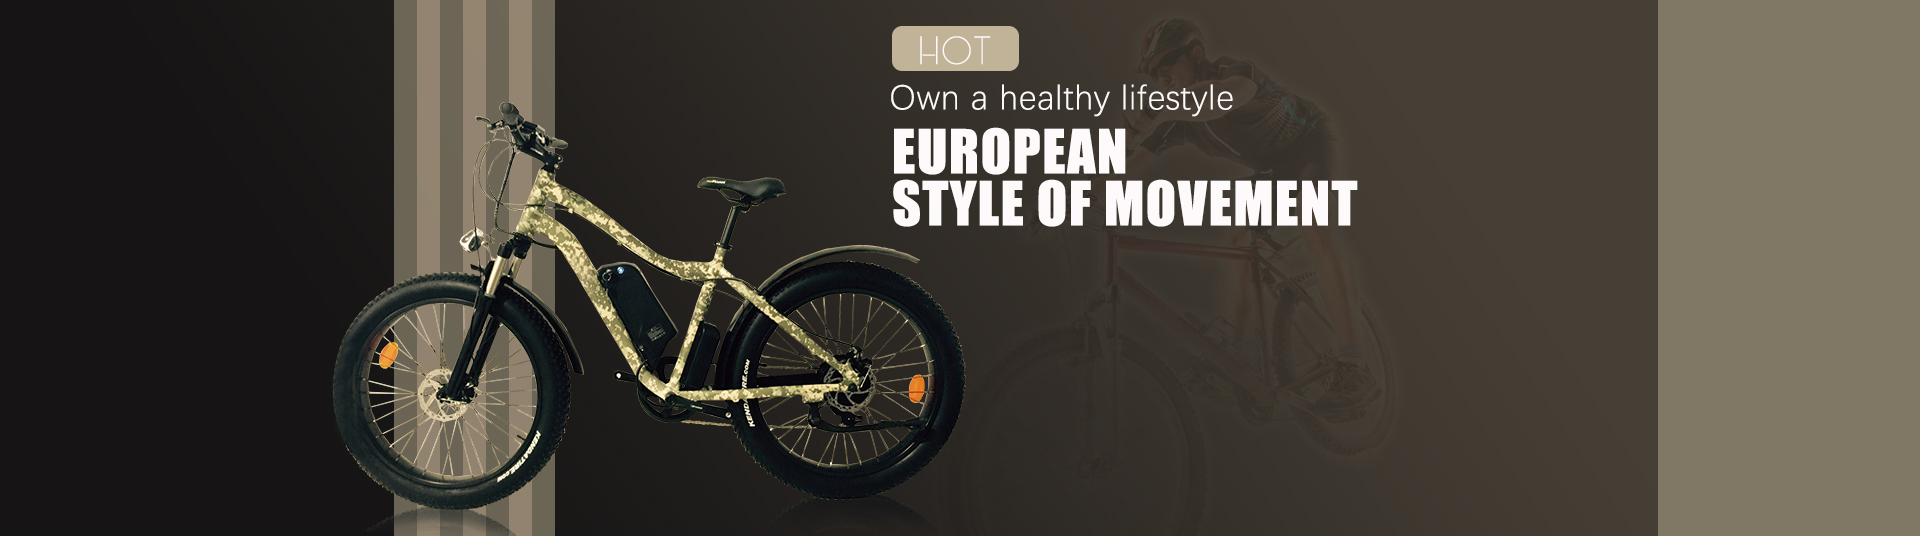 Hot stupendous! electric bike contact attractively